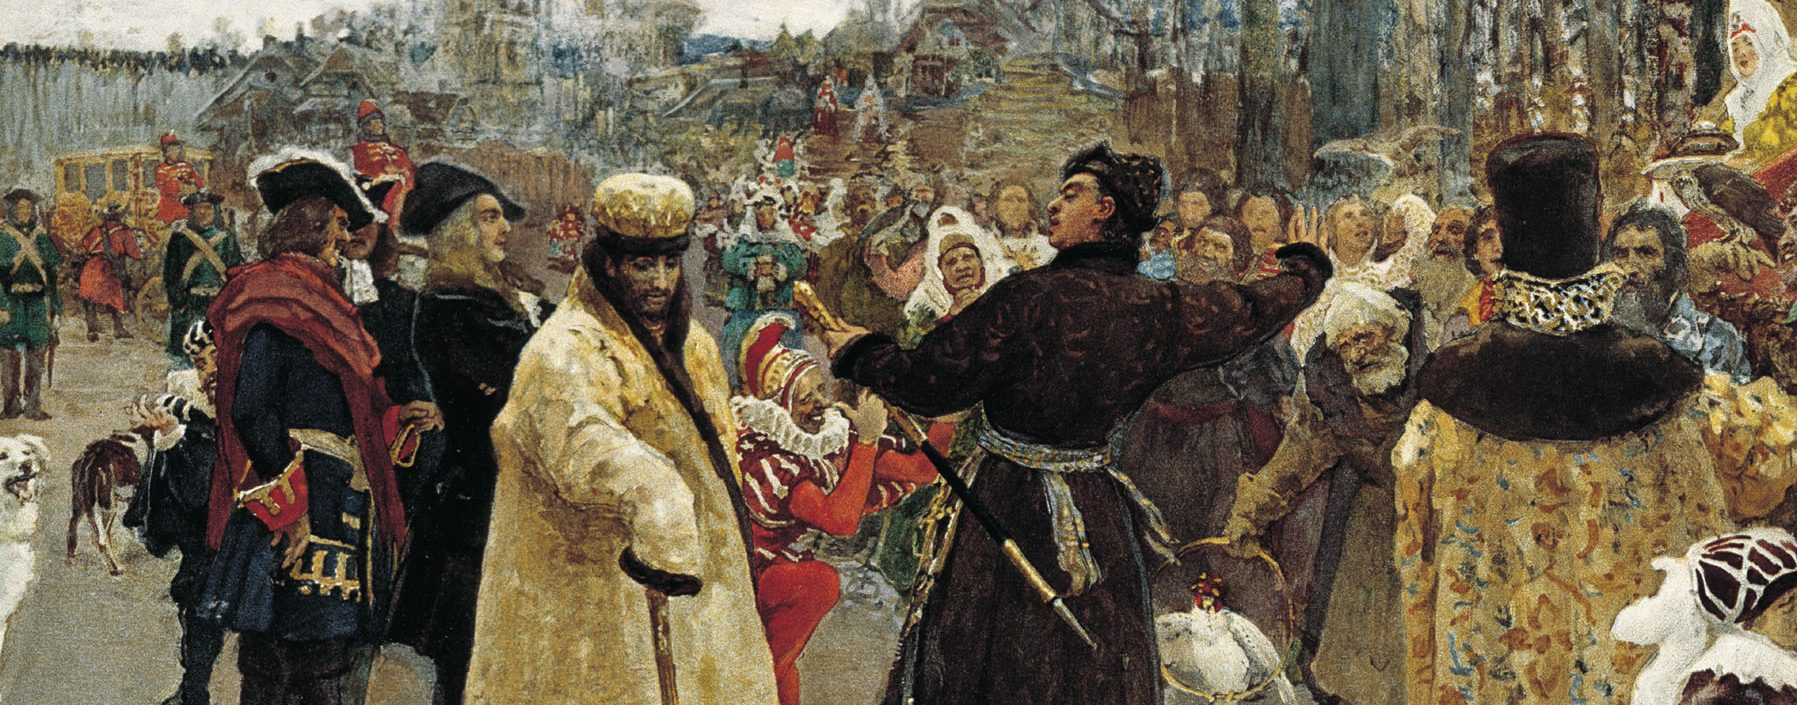 two_tsars_by_i-repin_-1900-_grm